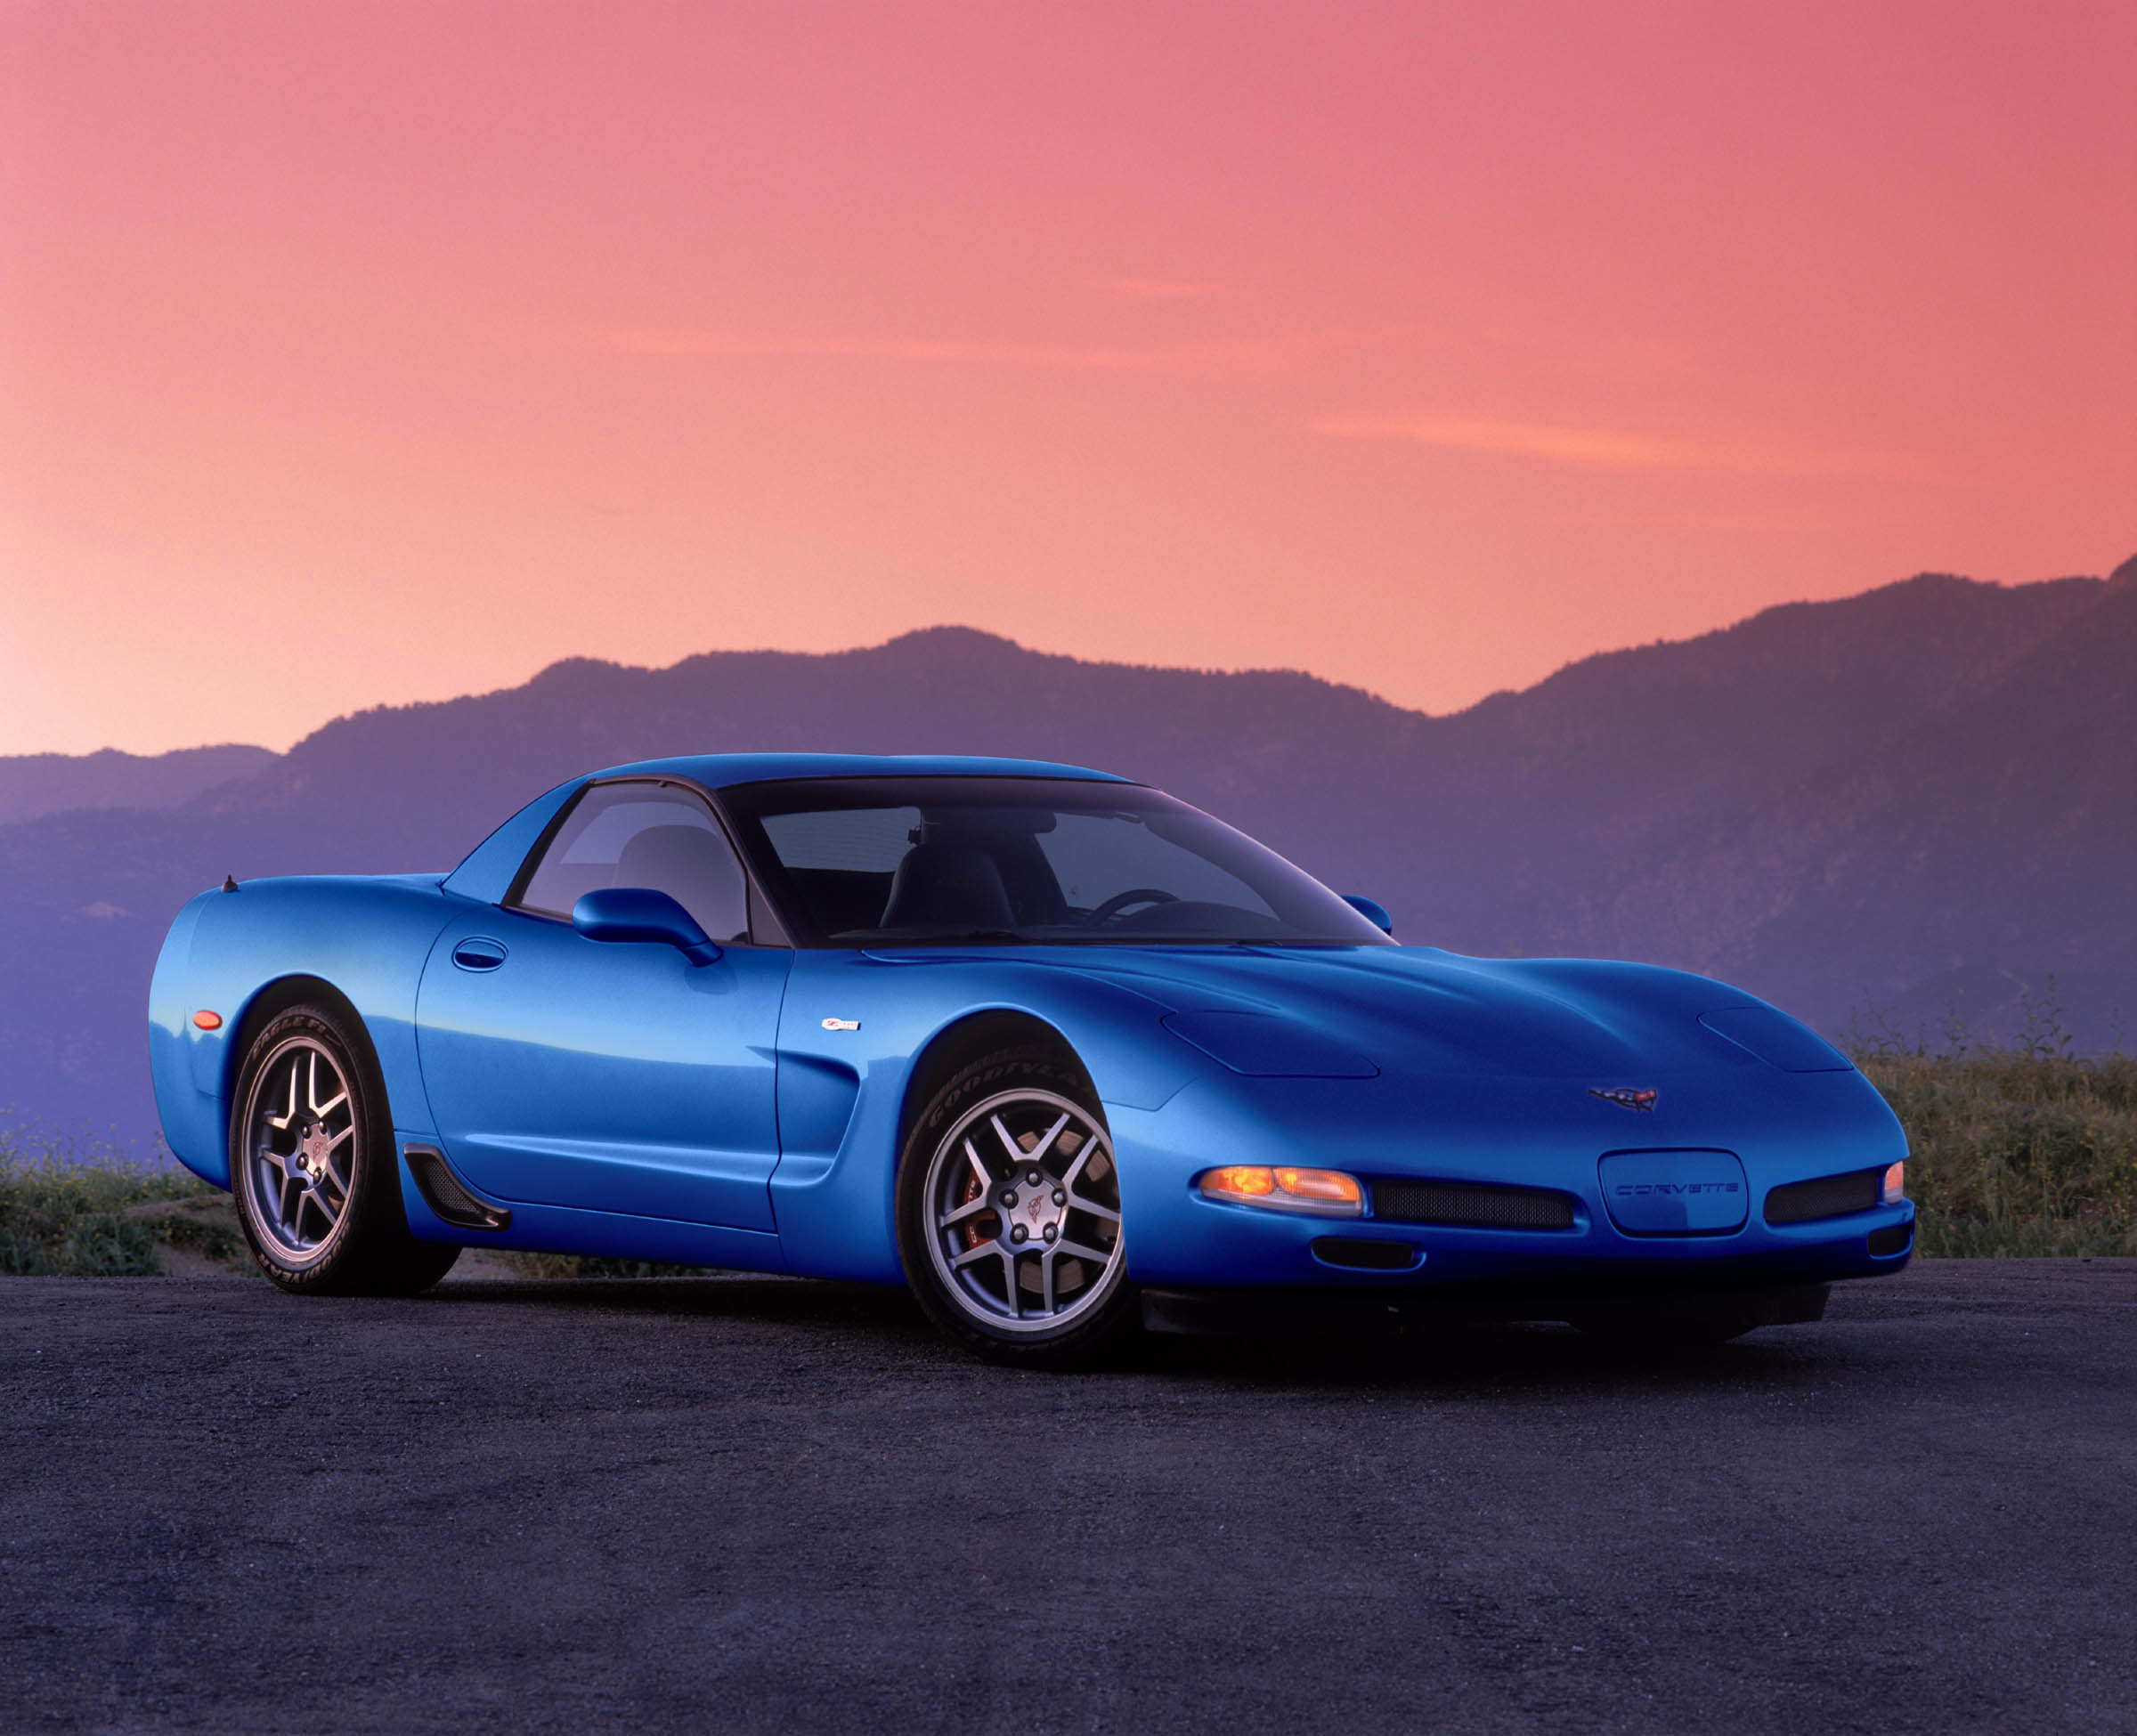 2001 - 2004 Chevrolet Corvette Z06 (C5) | Top Speed